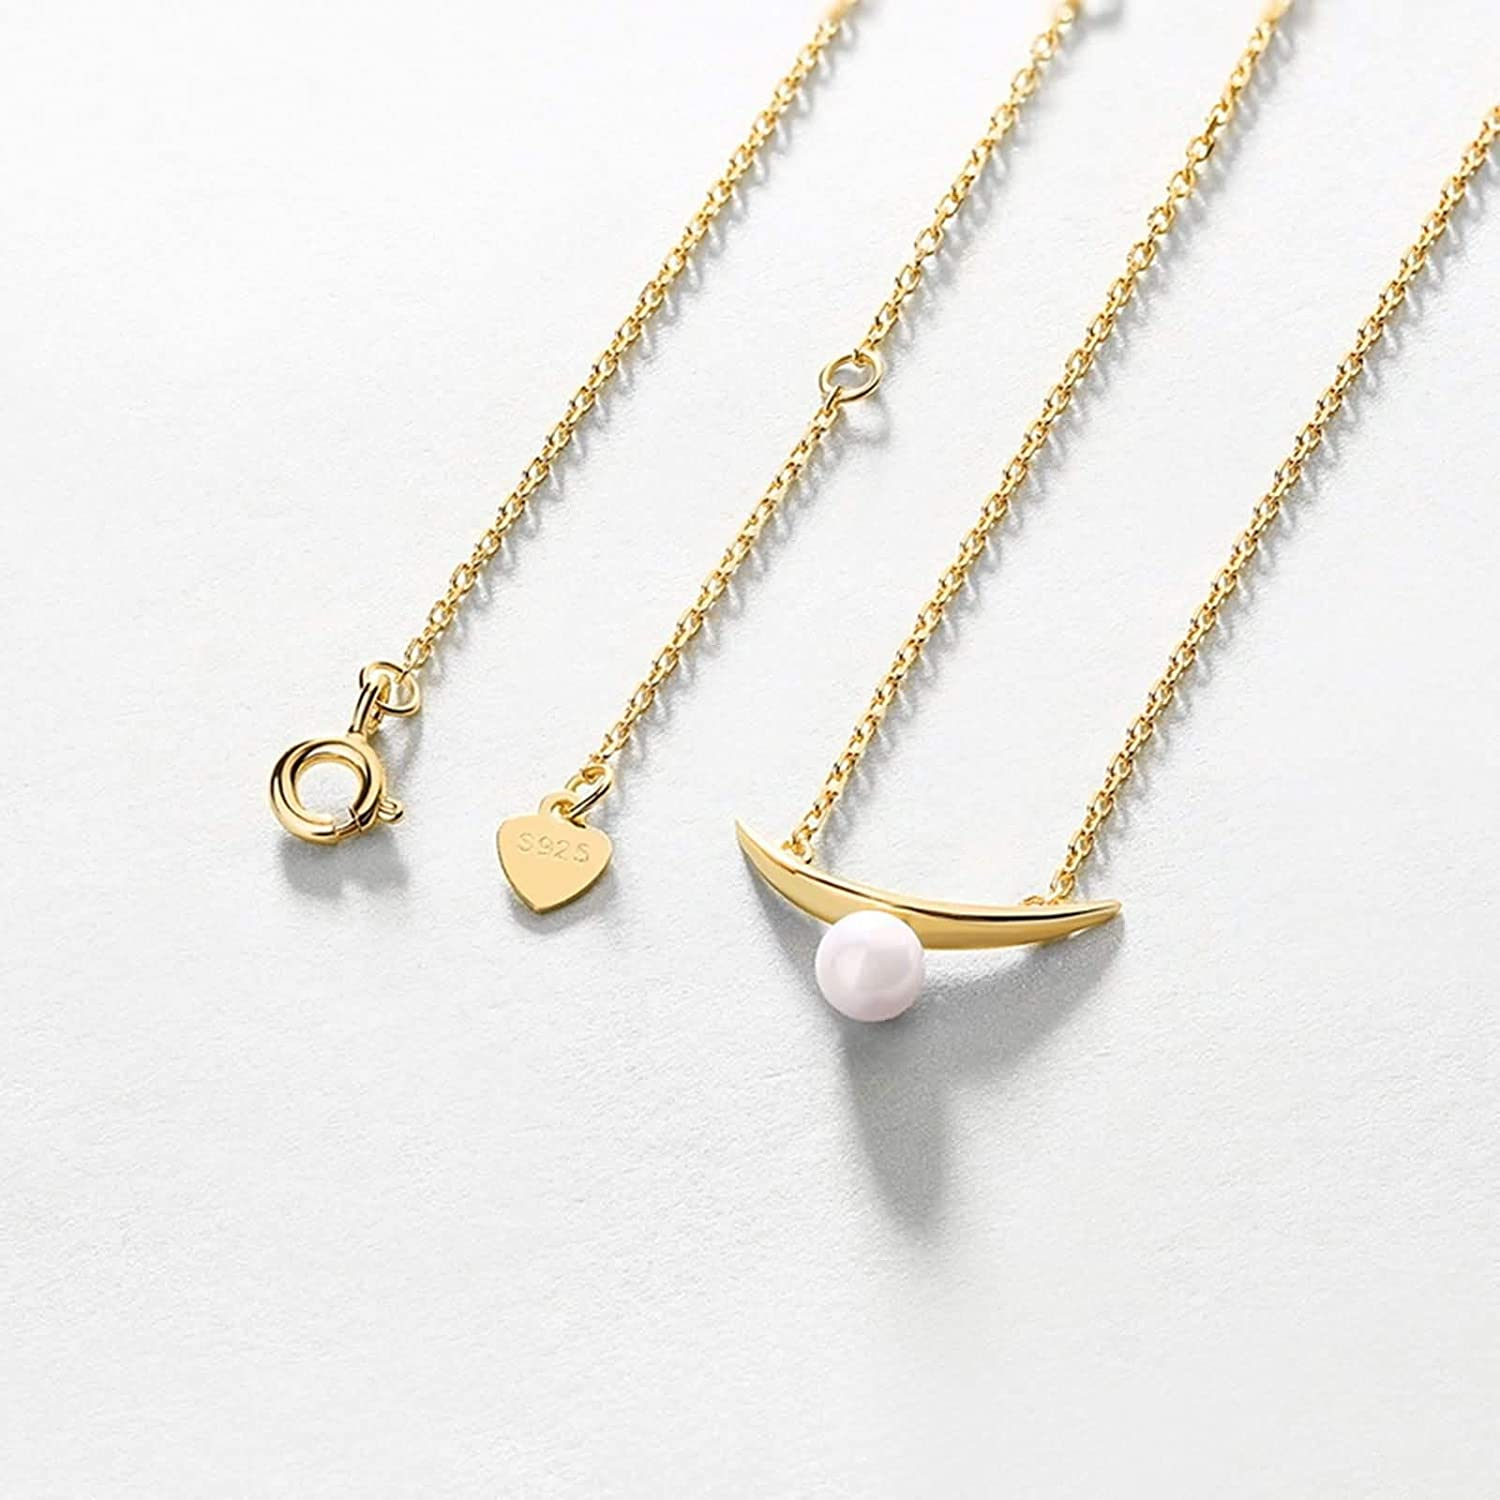 Epinki 925 Sterling Silver Necklace for Women Girls Gold Pearl Crescent Pendant Necklace